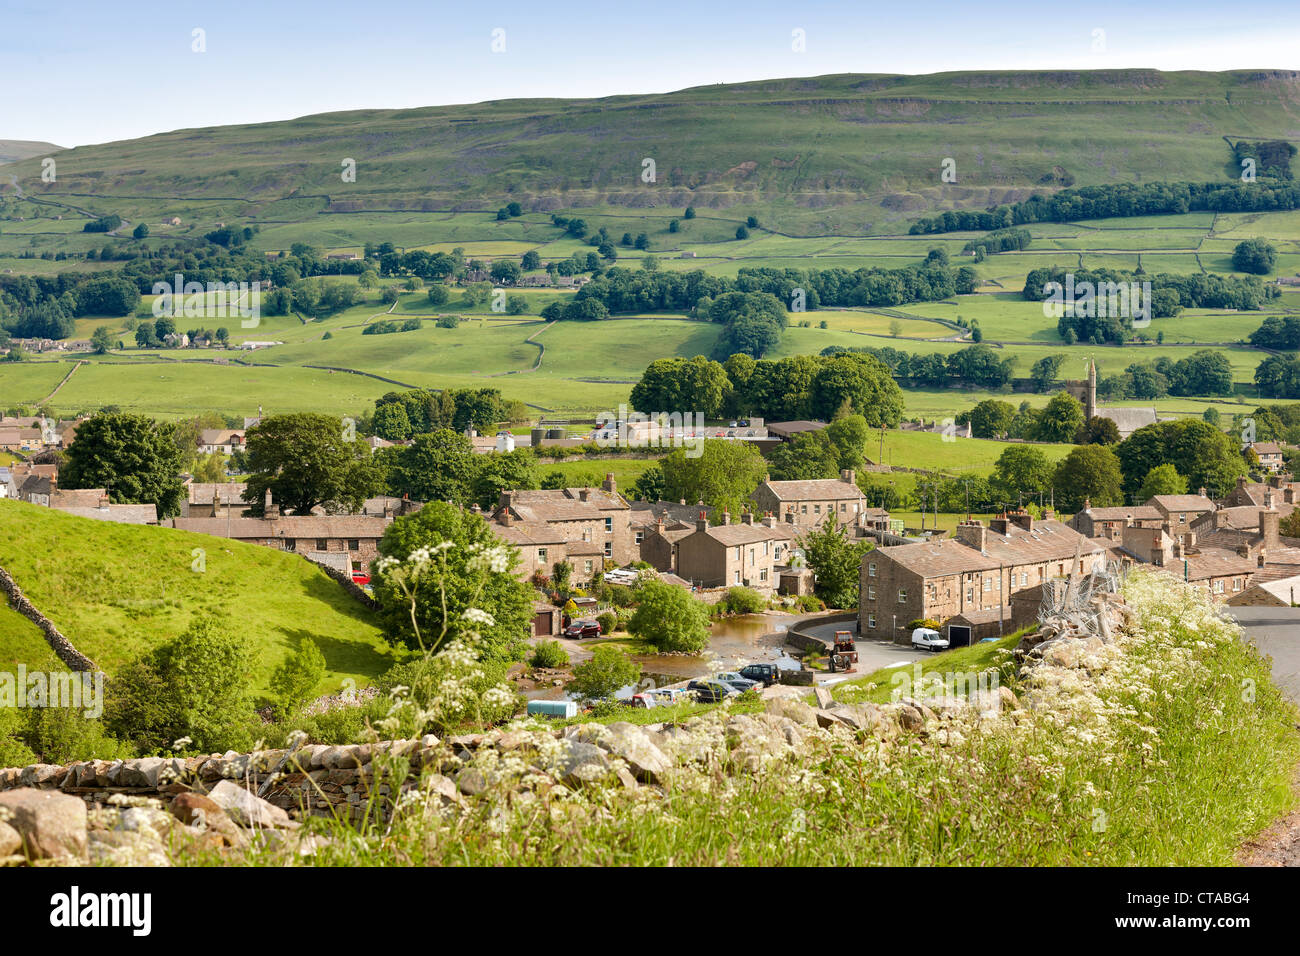 The village of Gayle in Wensleydale, Yorkshire Dales UK Stock Photo